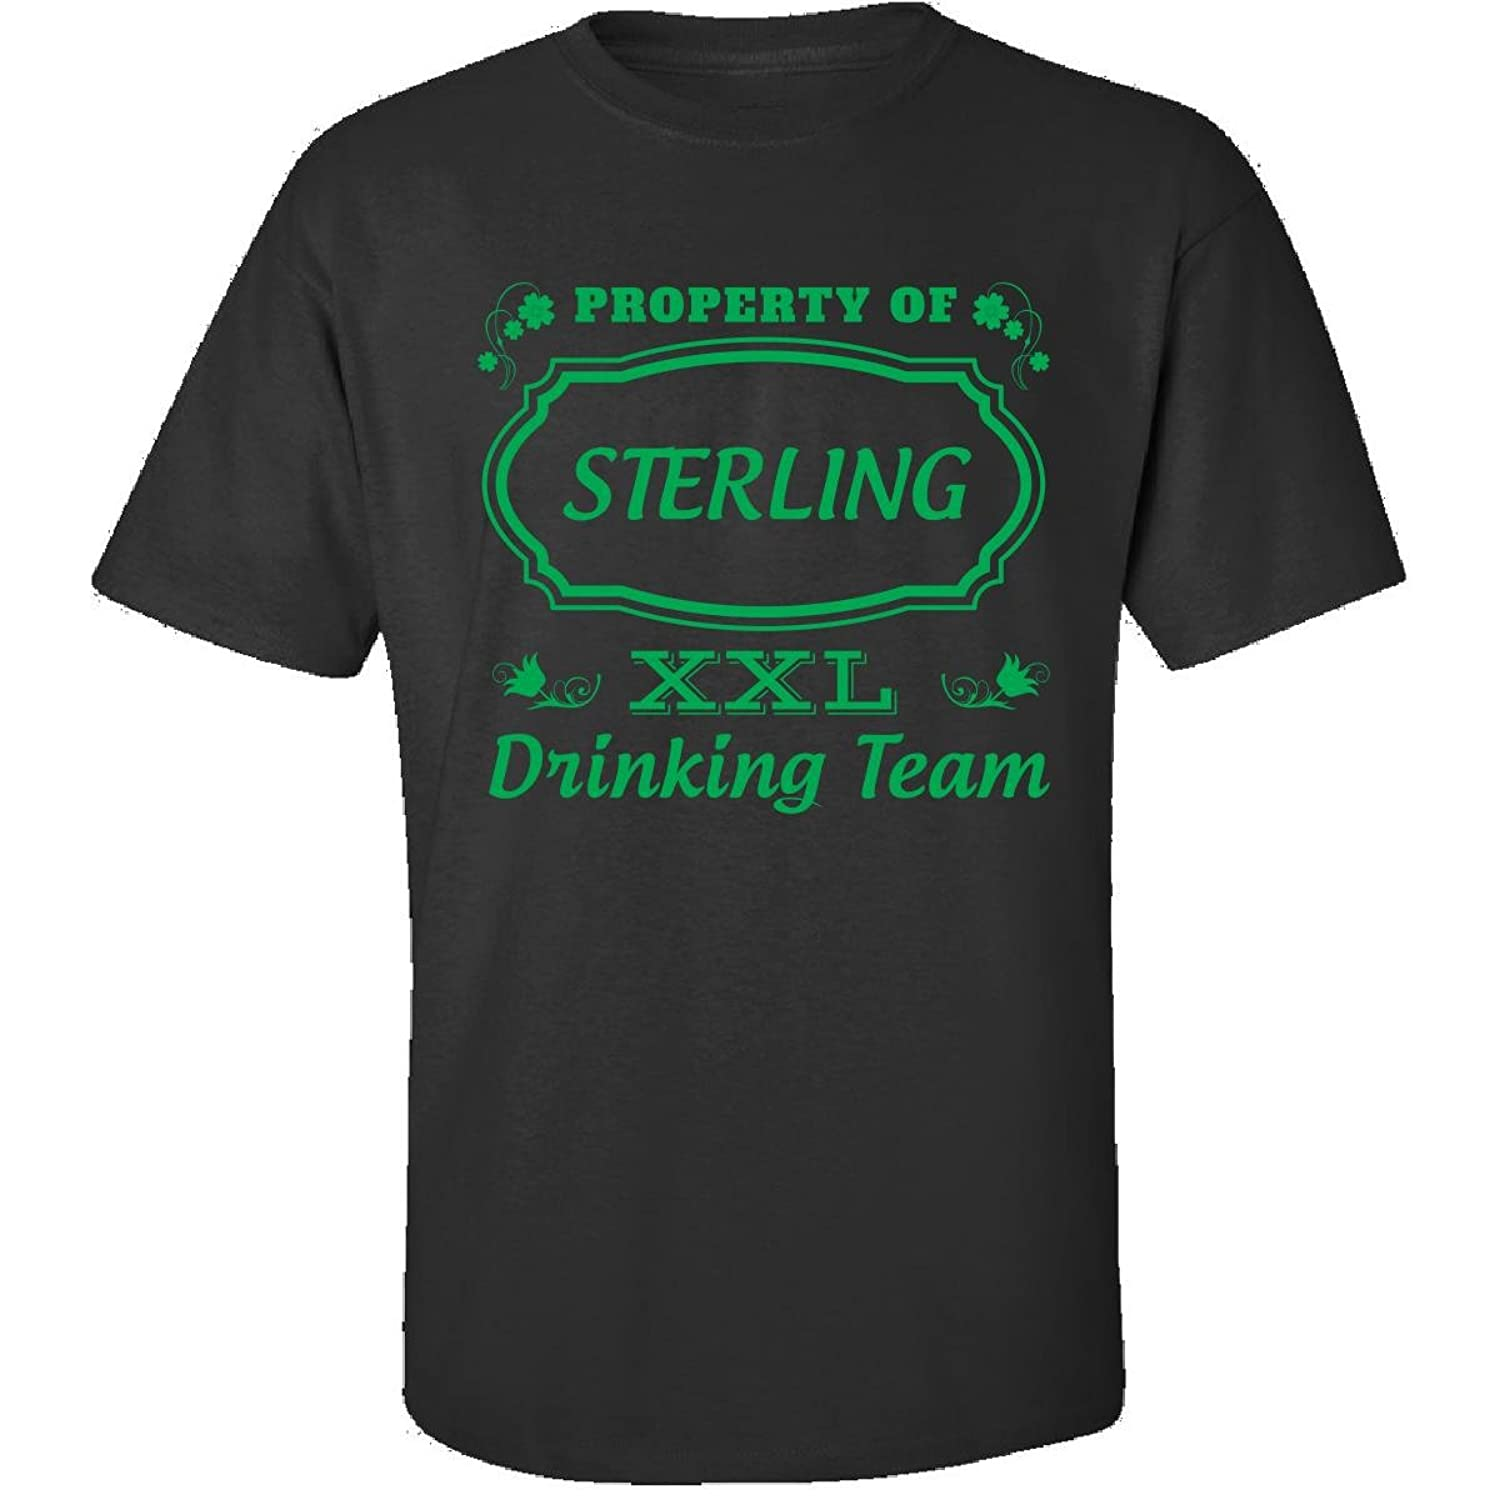 Property Of Sterling St Patrick Day Beer Drinking Team - Adult Shirt